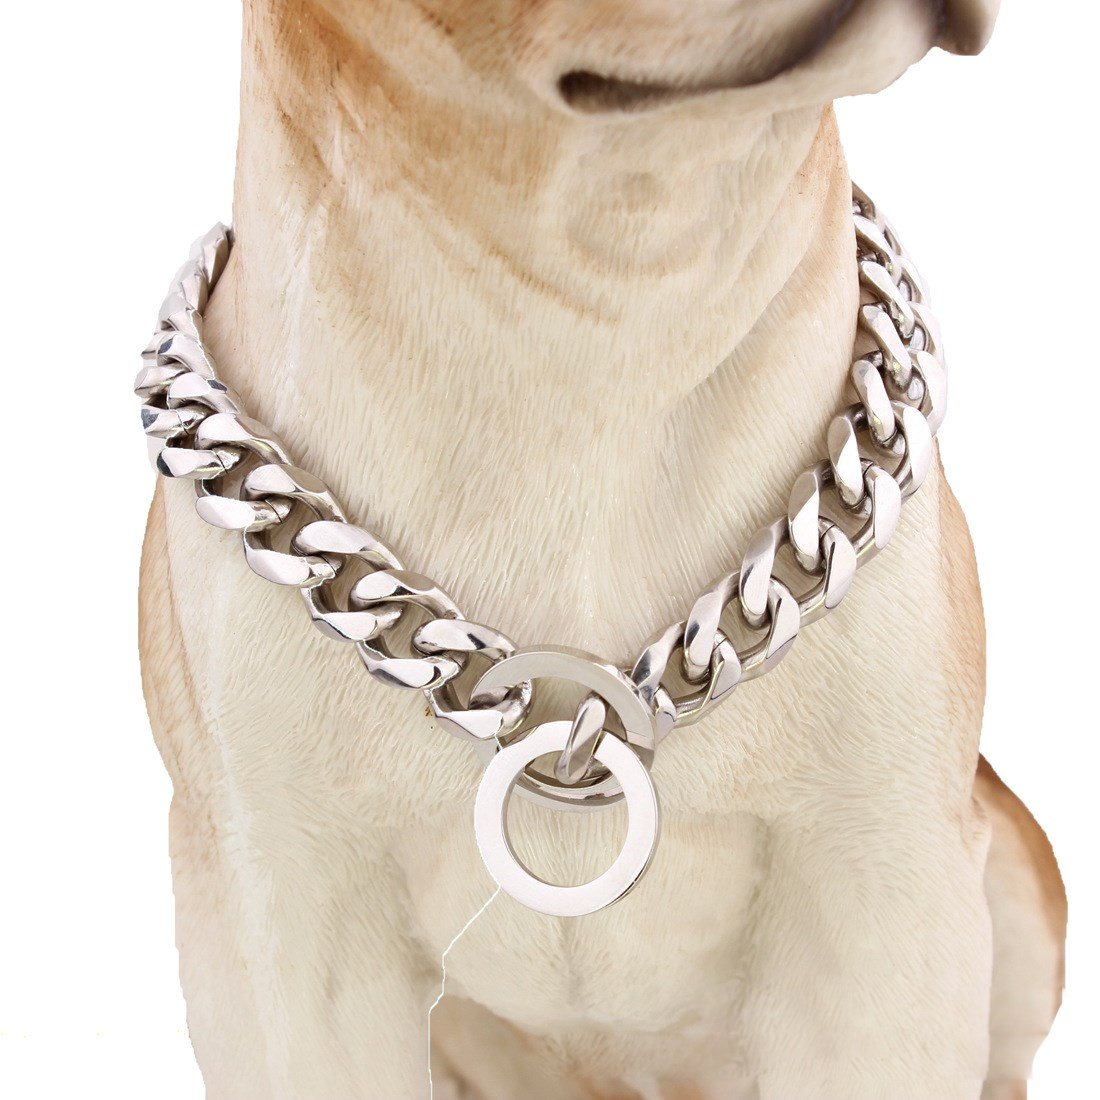 22 inch Pet Online Dog collar mirror polished stainless steel p chain titanium steel chain necklace pet dog training leash Tow Collar 12mm,22